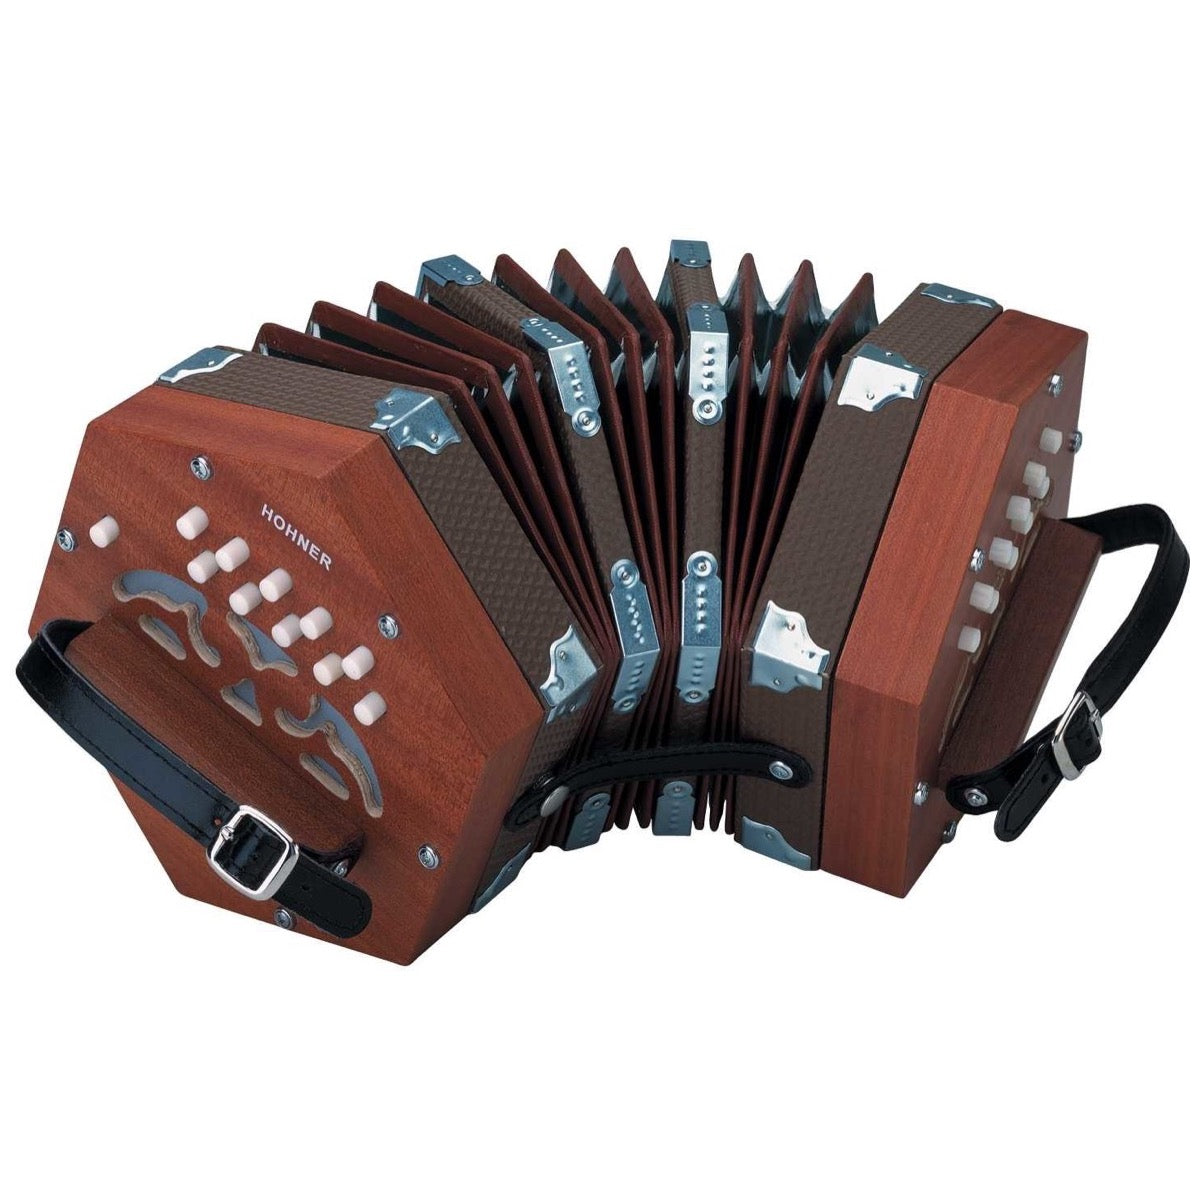 Hohner D40 Concertina, with Gig Bag